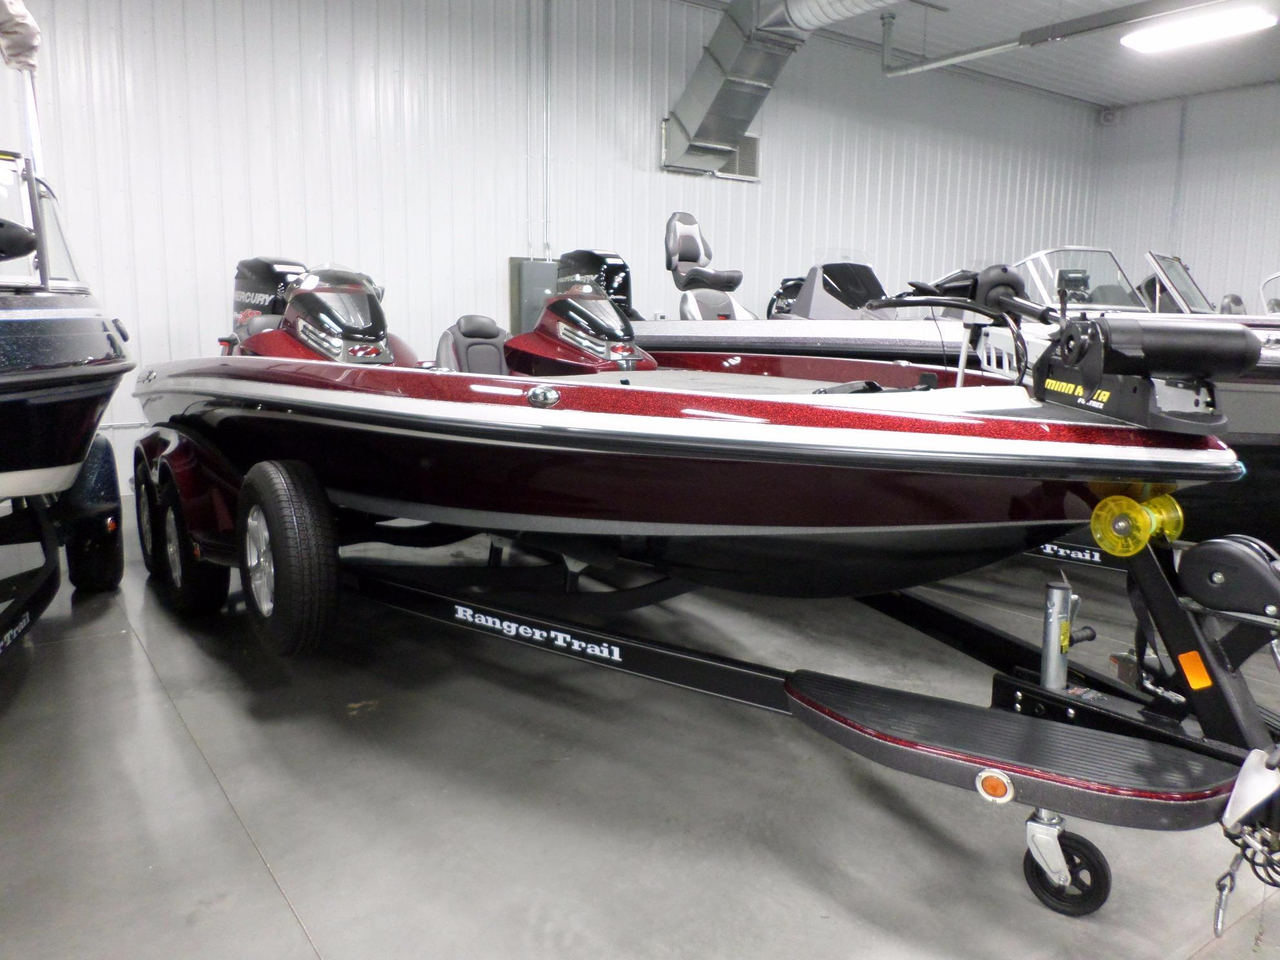 Z520 Ranger Bass Boats For Sale Photos